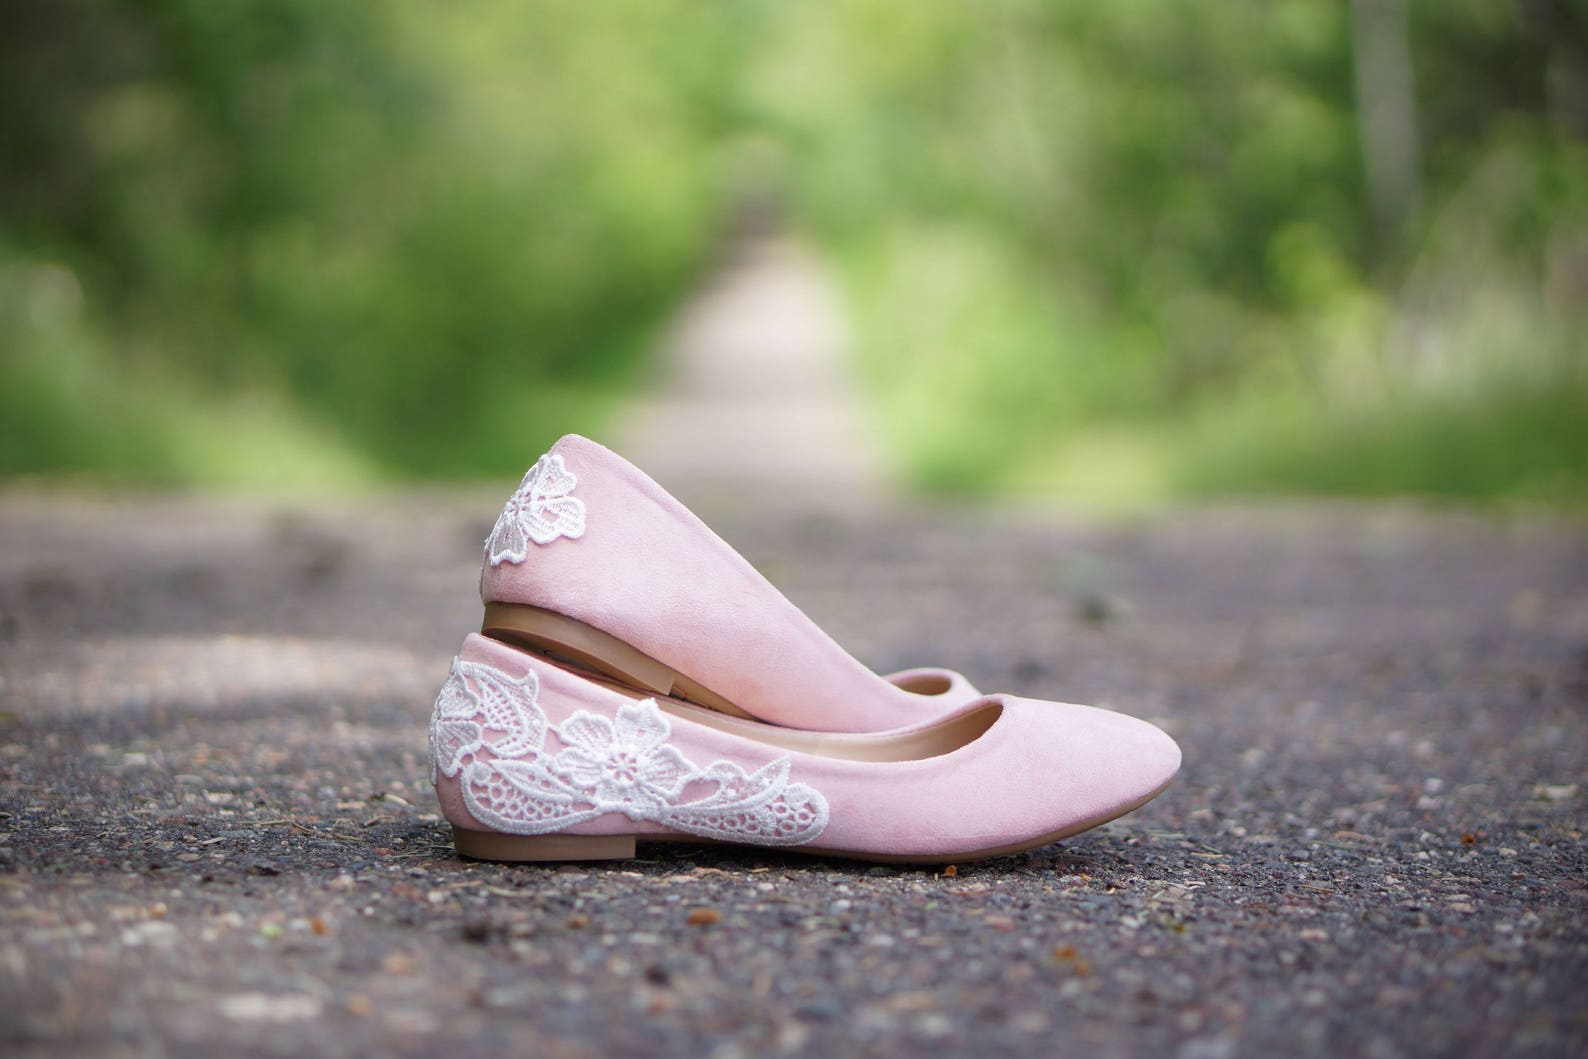 blush wedding shoes, wedding flats, blush flats, bridal flats, bridal shoes, bridesmaid gift, ballet flats,low wedding shoes wit